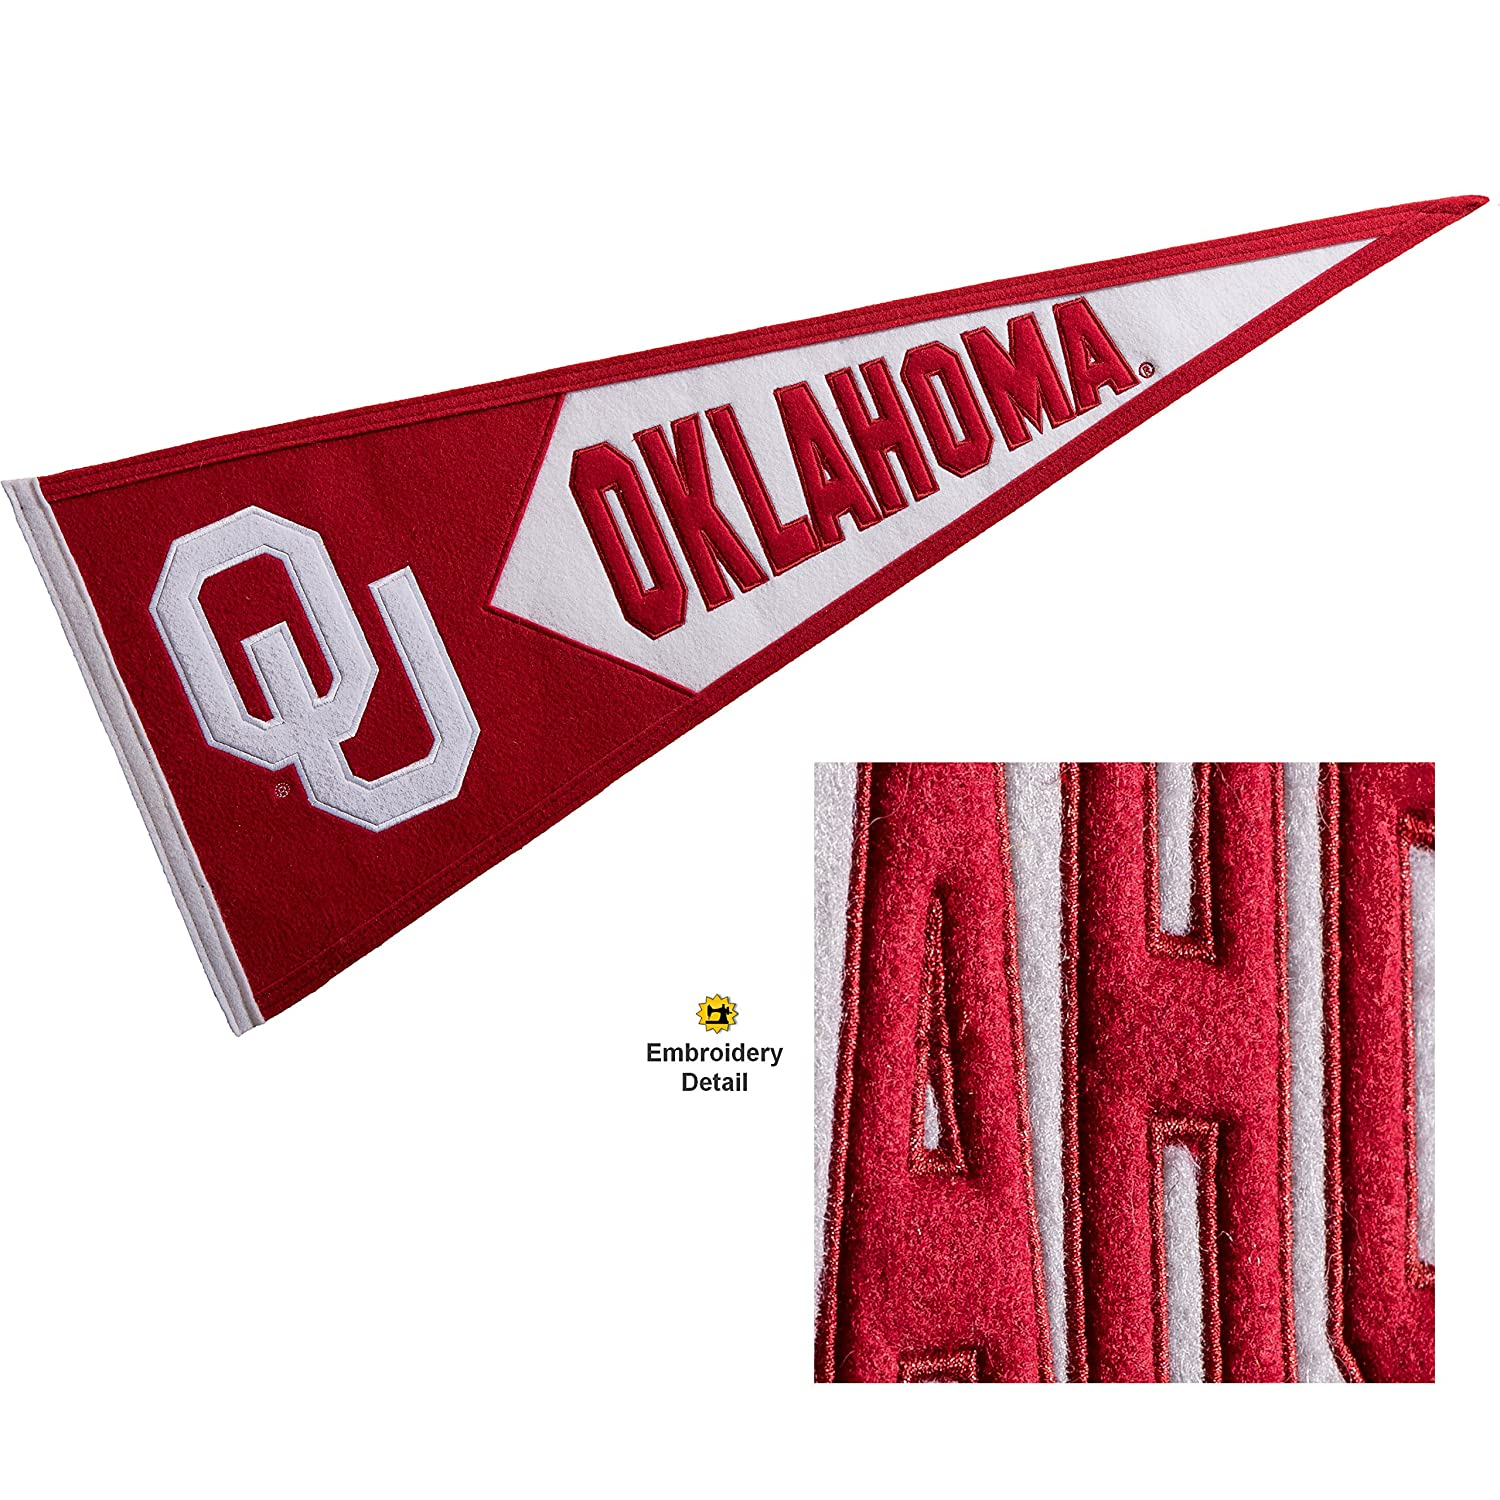 Winning Streak Oklahoma Sooners Wool Embroidered and Sewn Pennant Winning Streak Sports